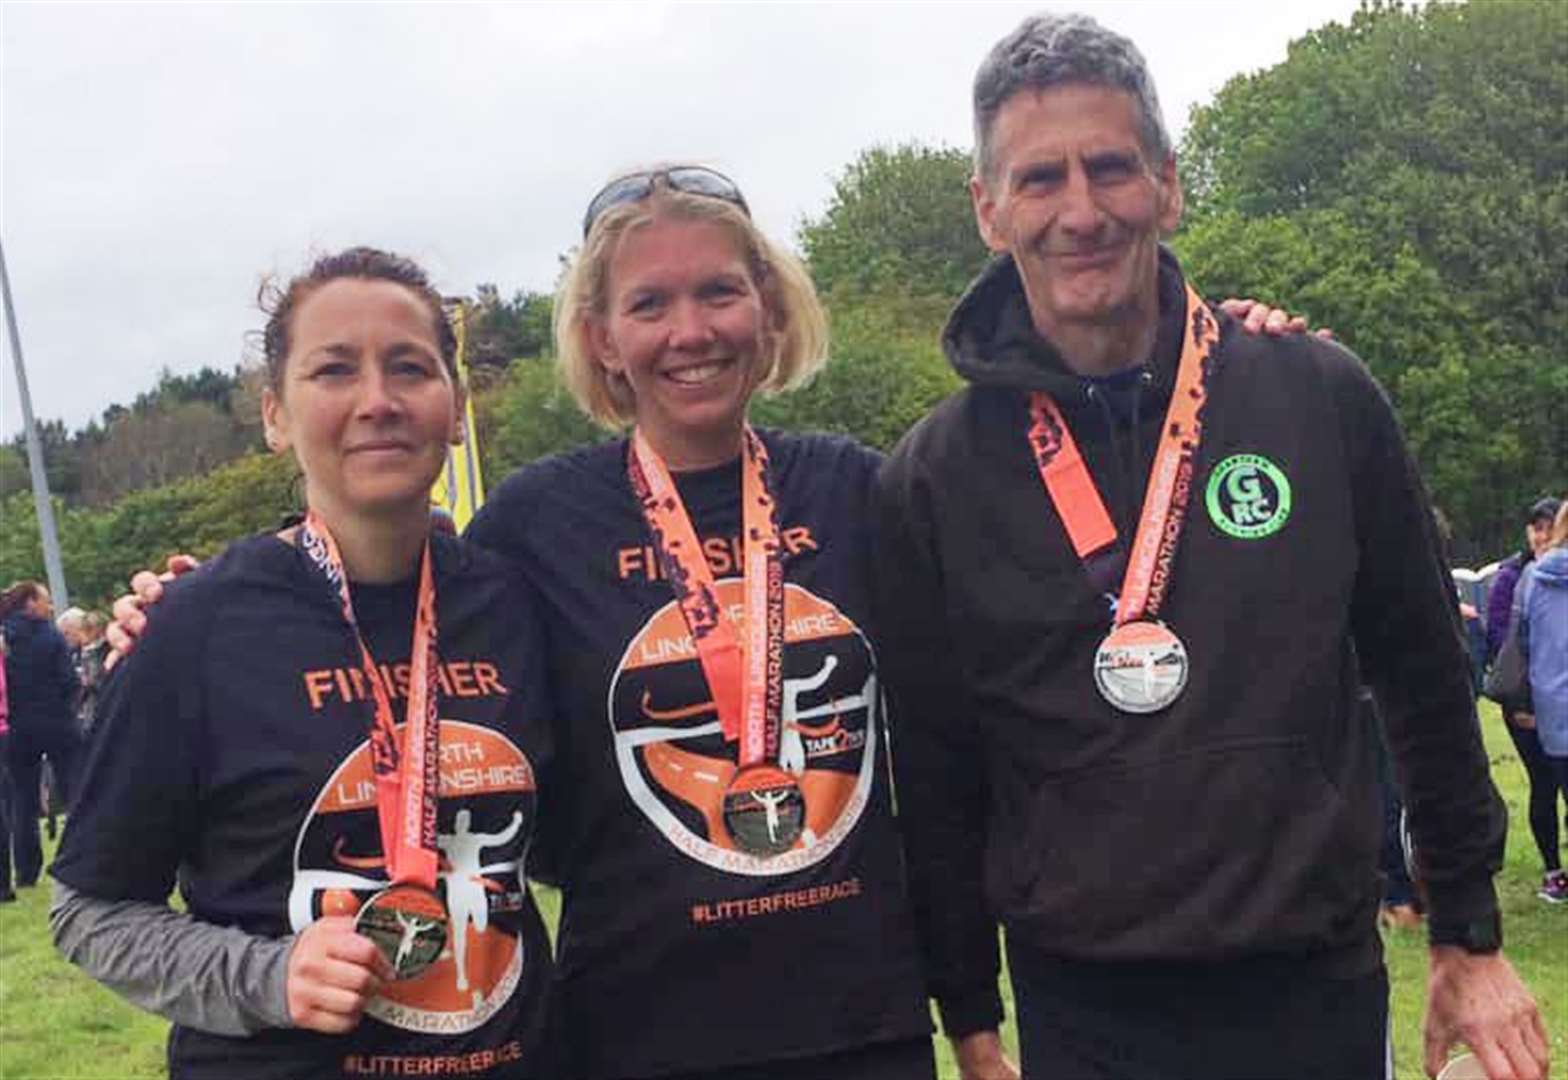 Howbrook is first home for Grantham Running Club in Scunthorpe half marathon